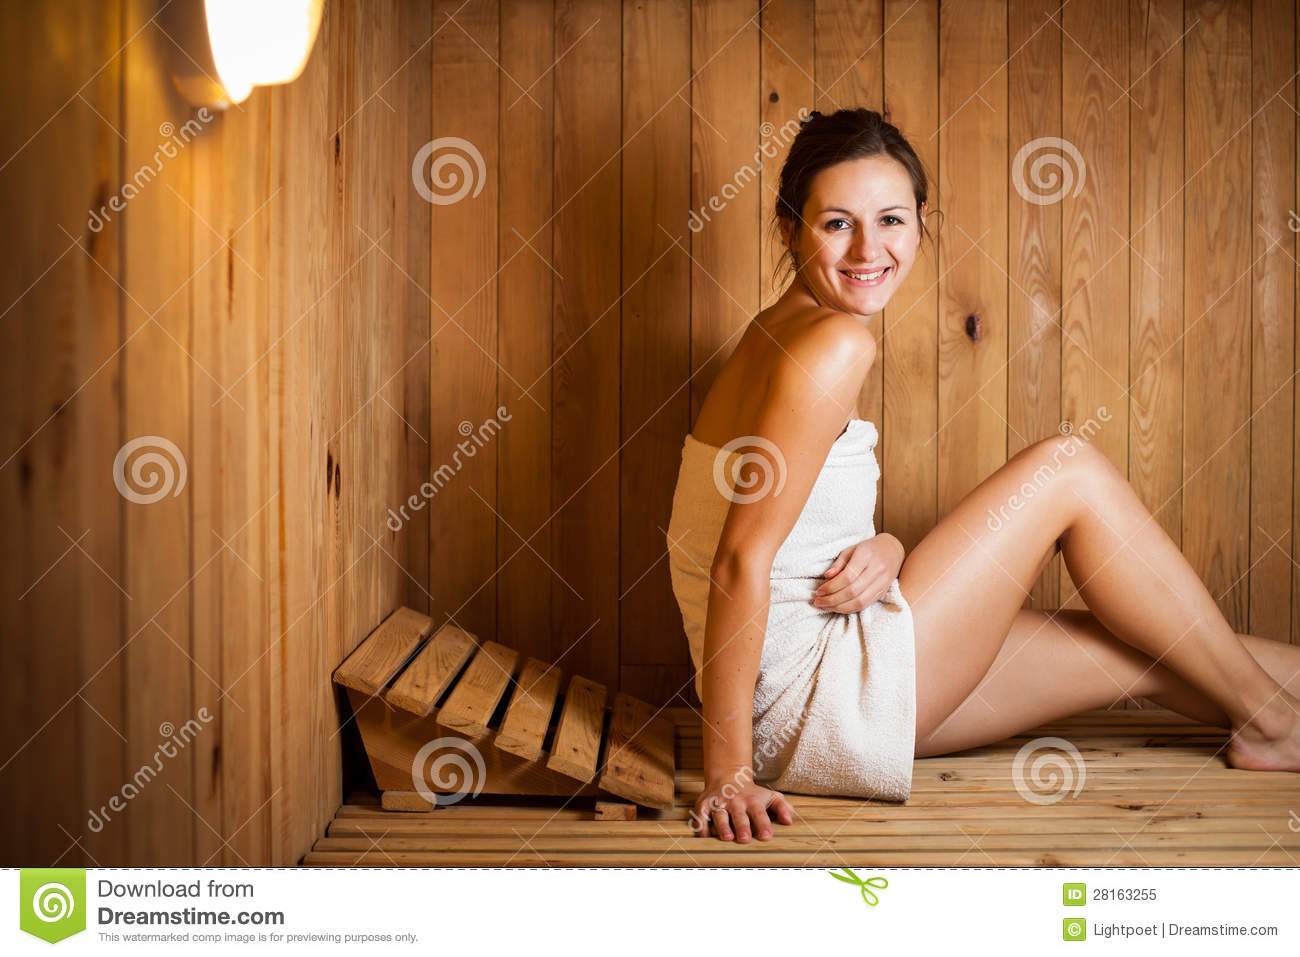 United Baggage Prices Woman Relaxing In A Sauna Royalty Free Stock Photo Image